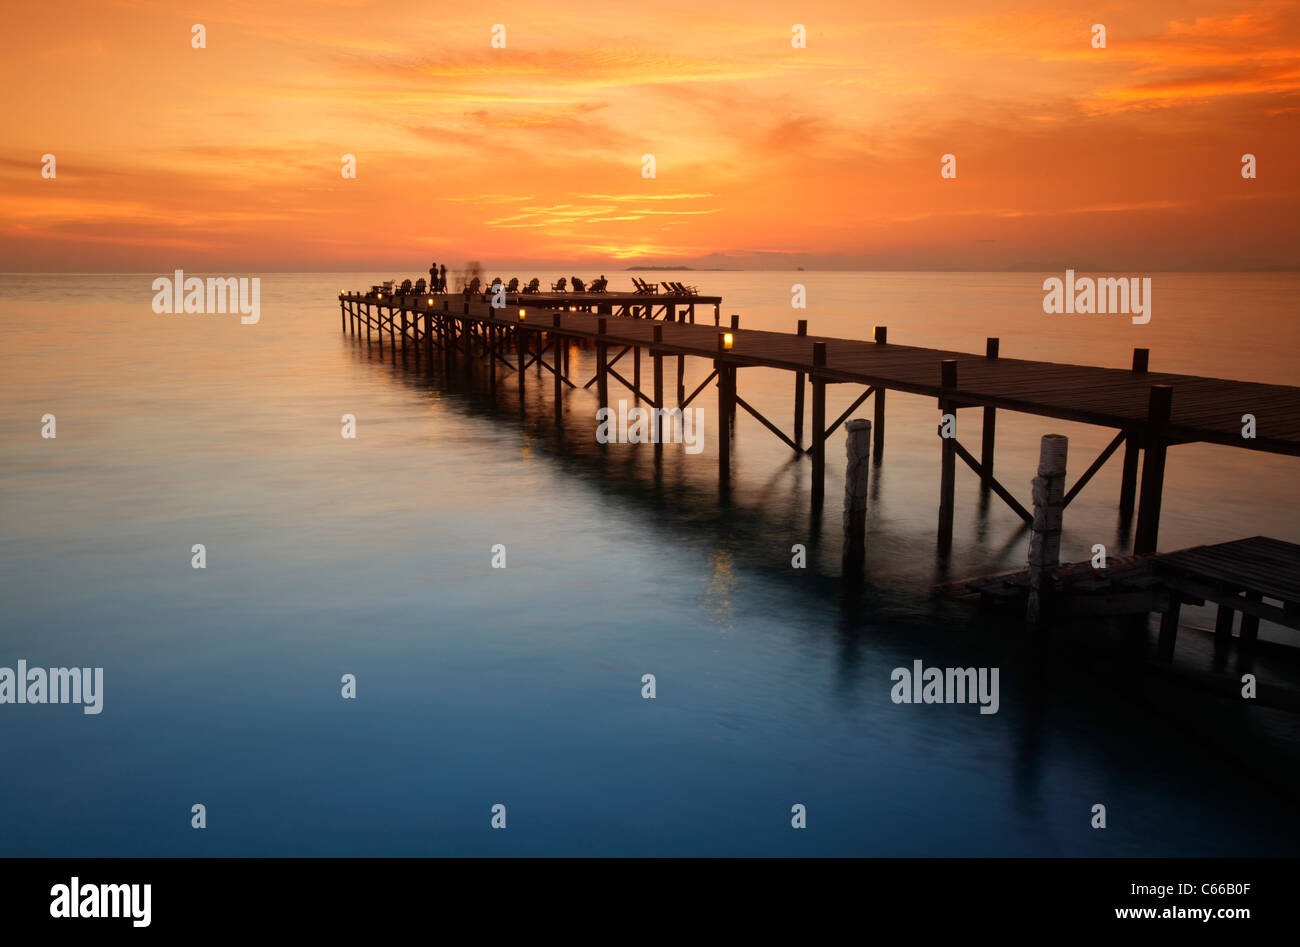 Jetty at sunset st Kapalai resort, Kapalai Island, Borneo, Malaysia - Stock Image